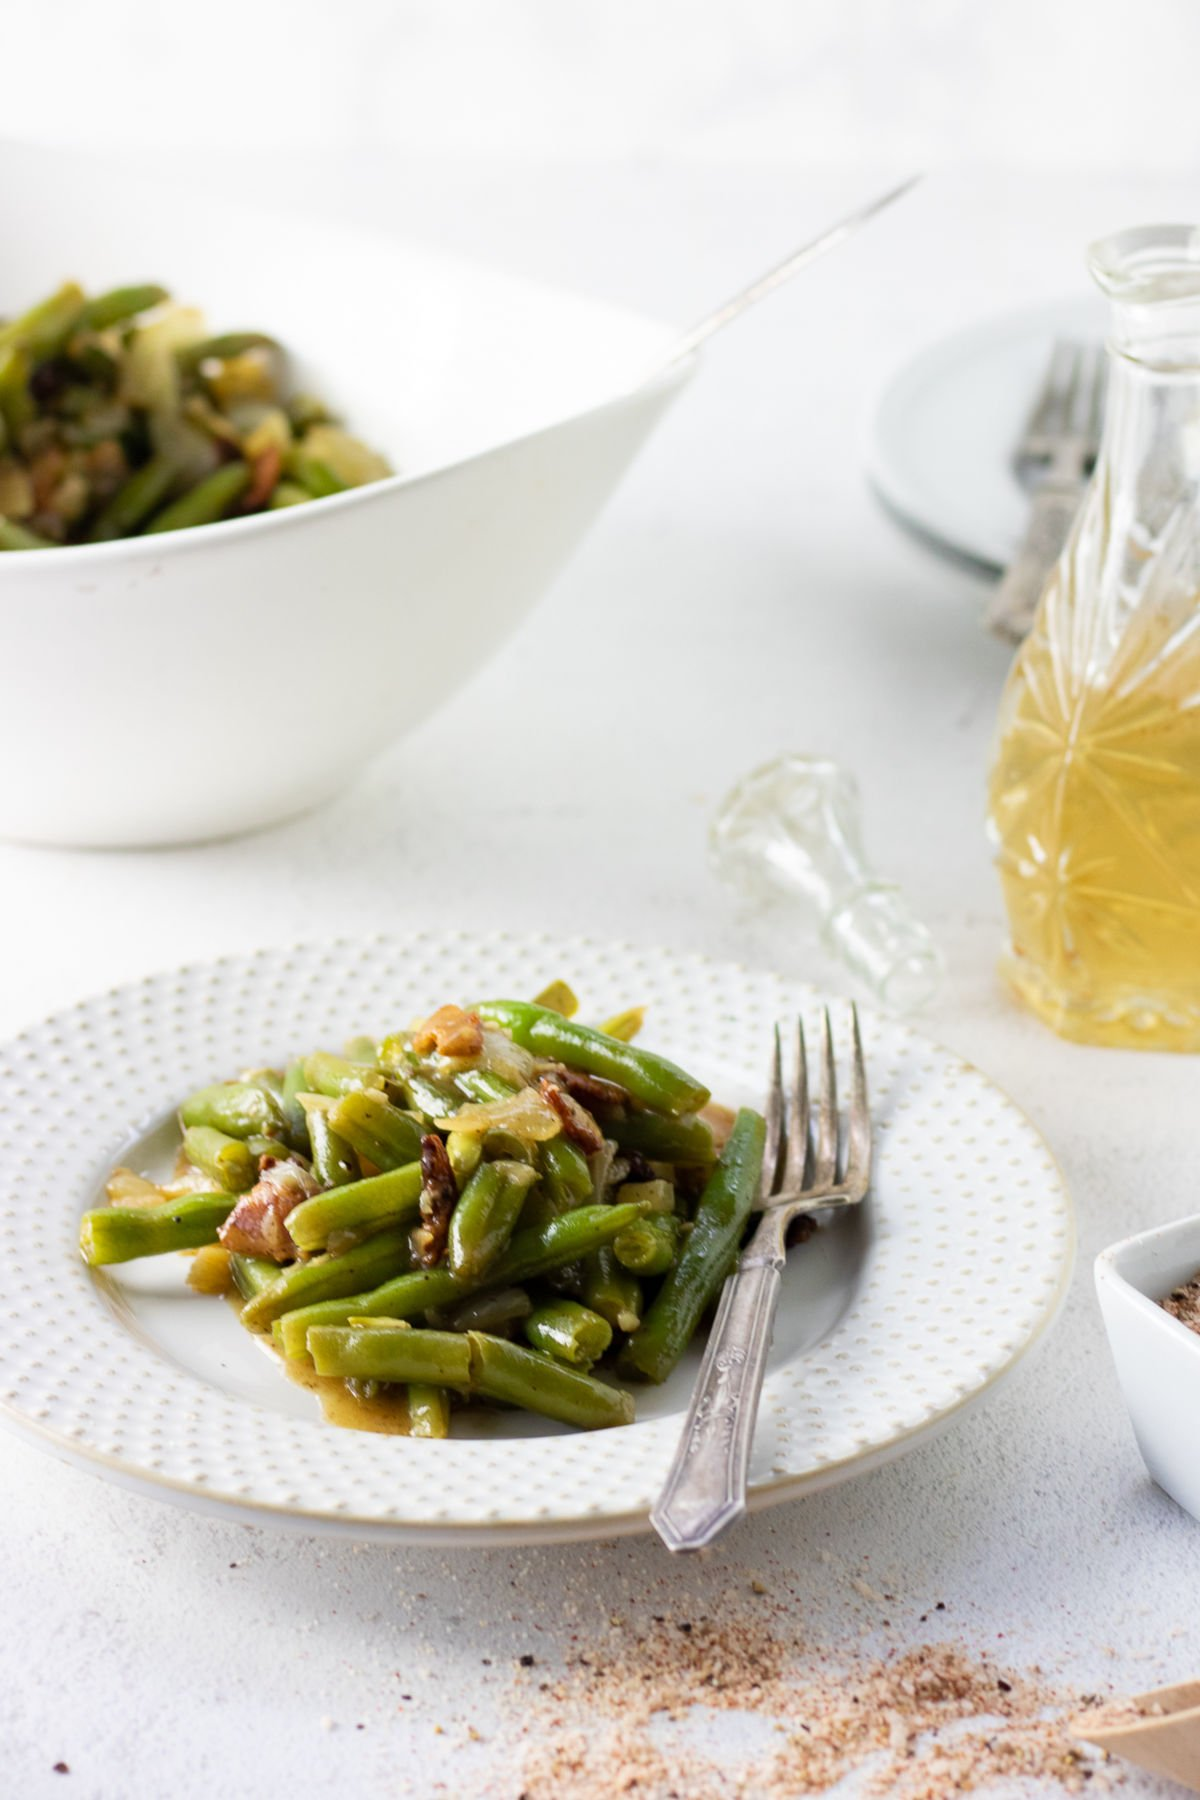 A plate of green beans on a table with the serving bowl in the background.